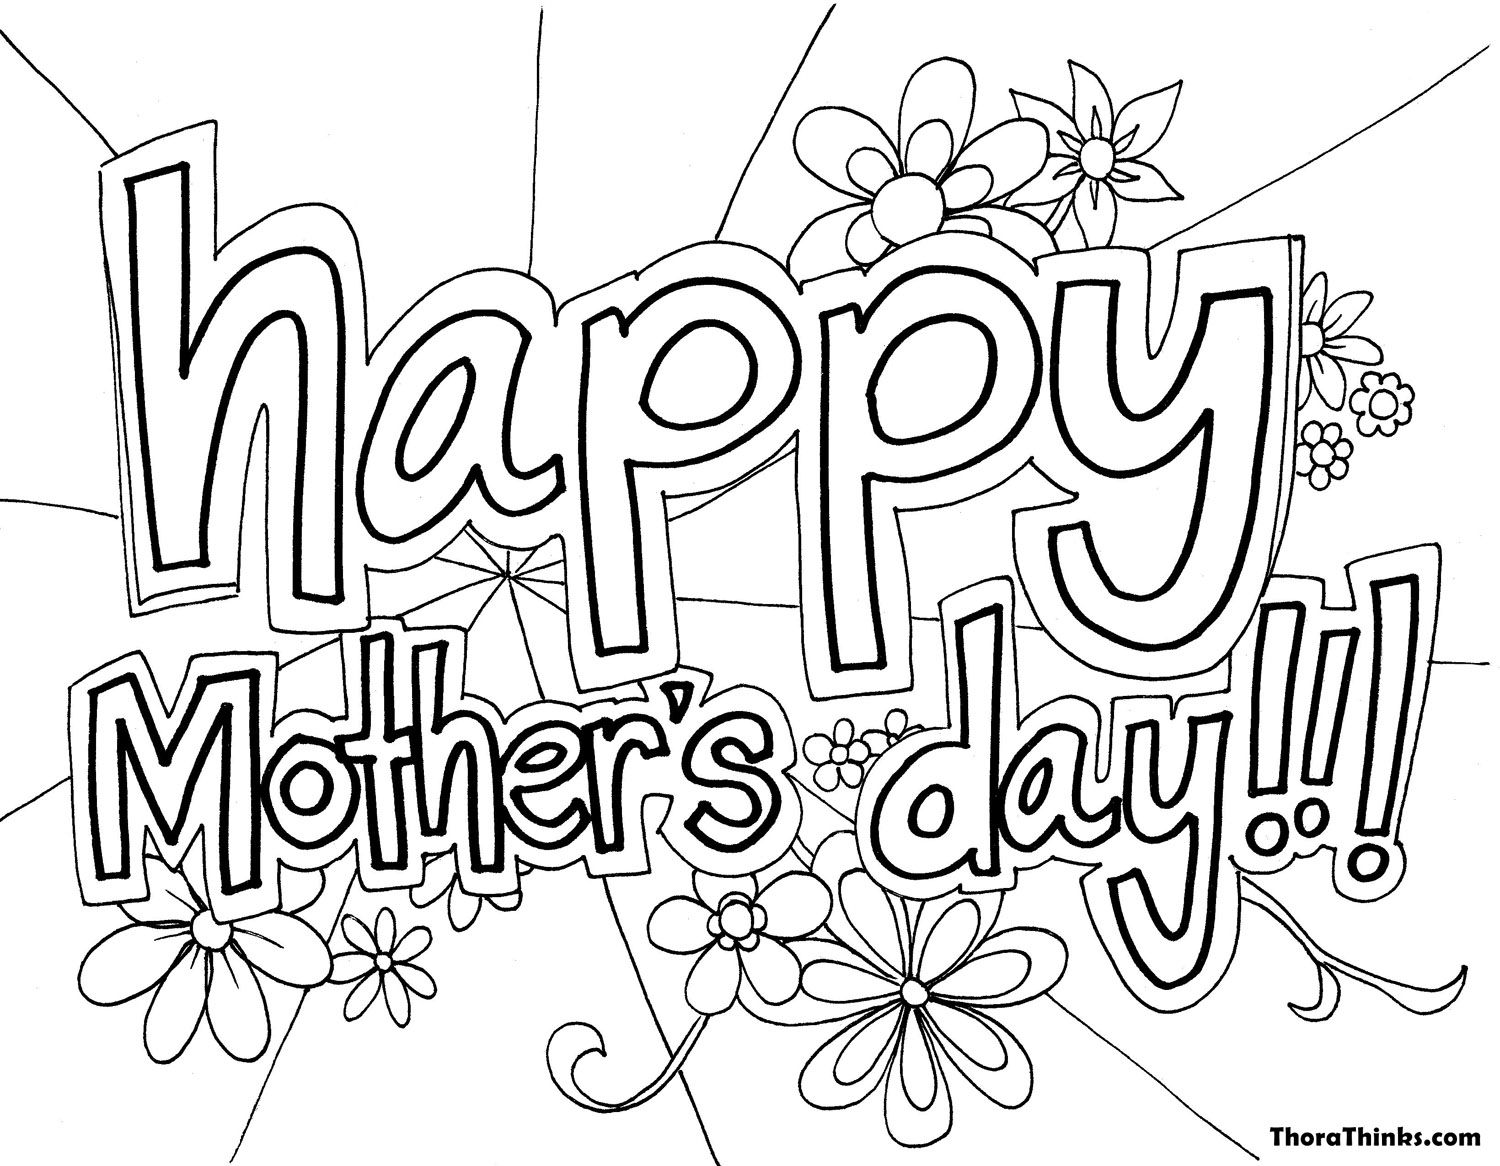 mothers day coloring pages grandma - Free Large Images | Mothers ...